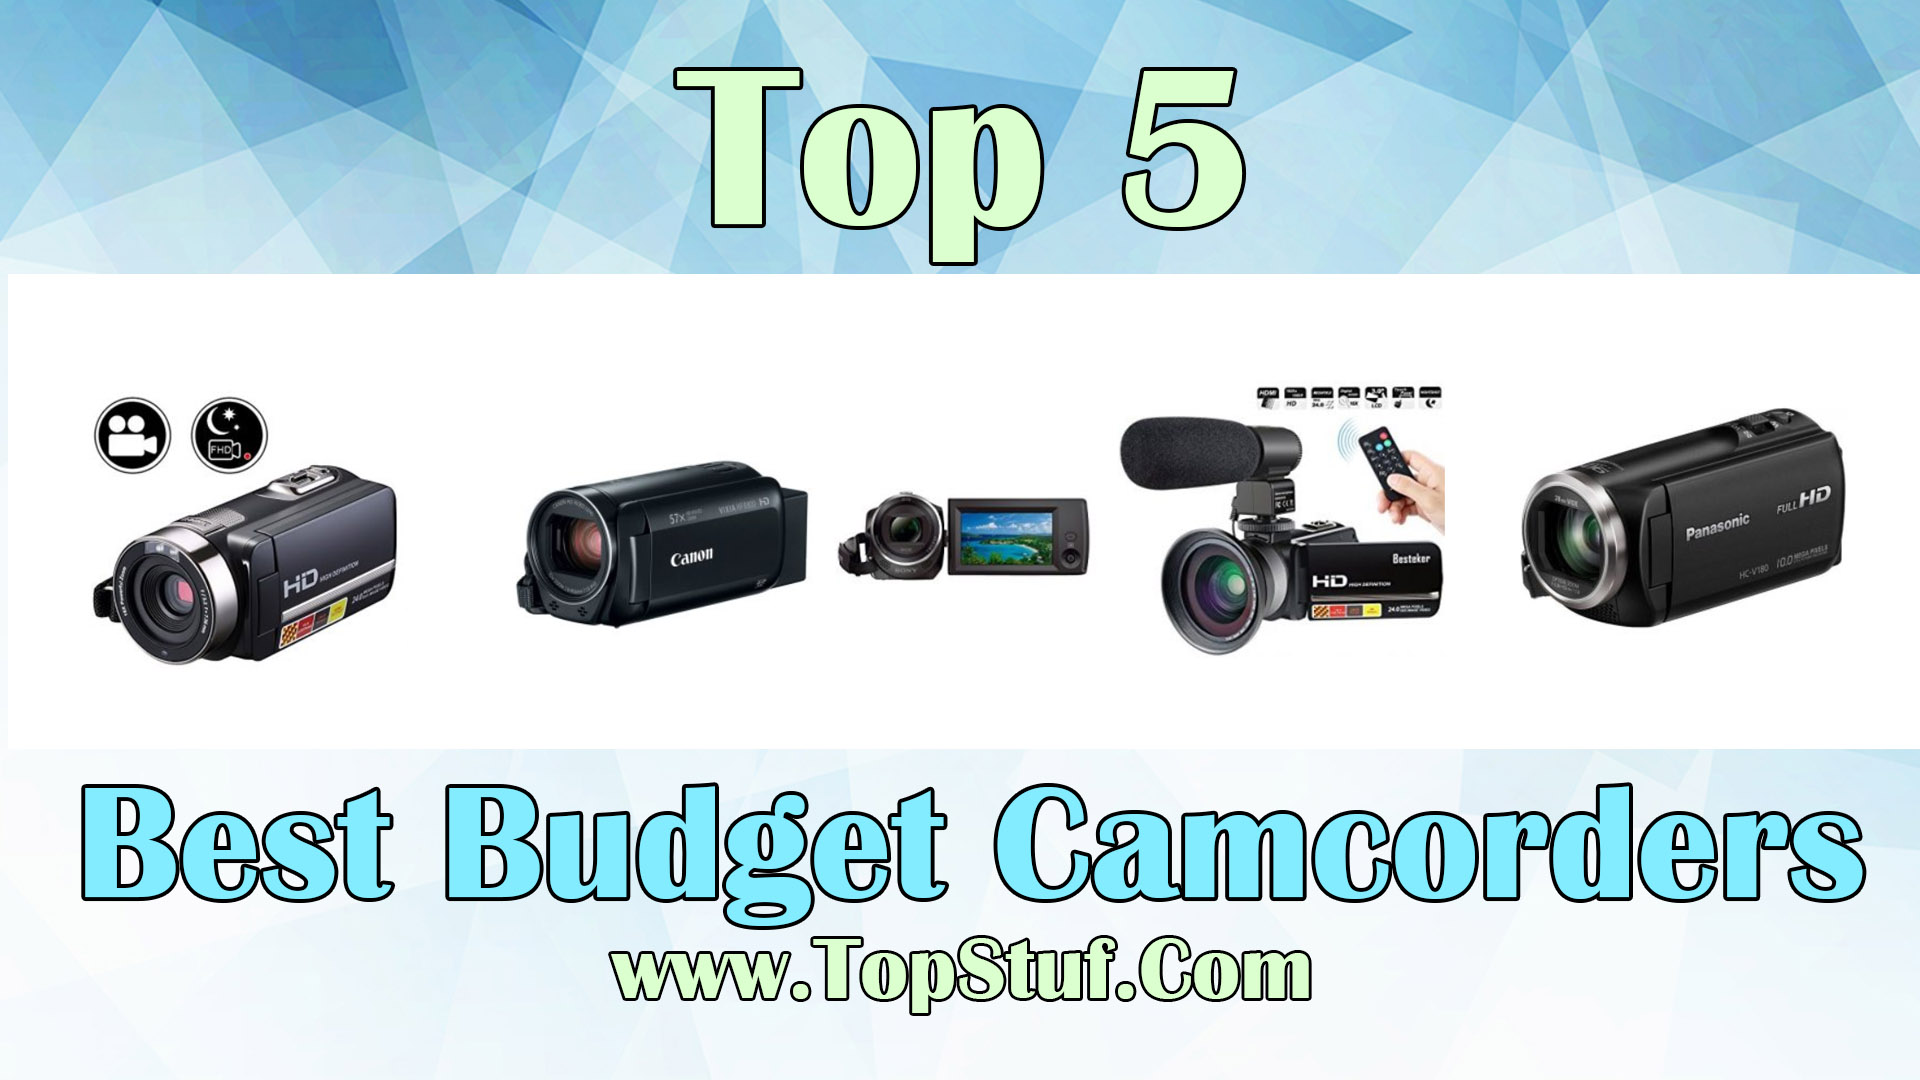 Best Budget Camcorders